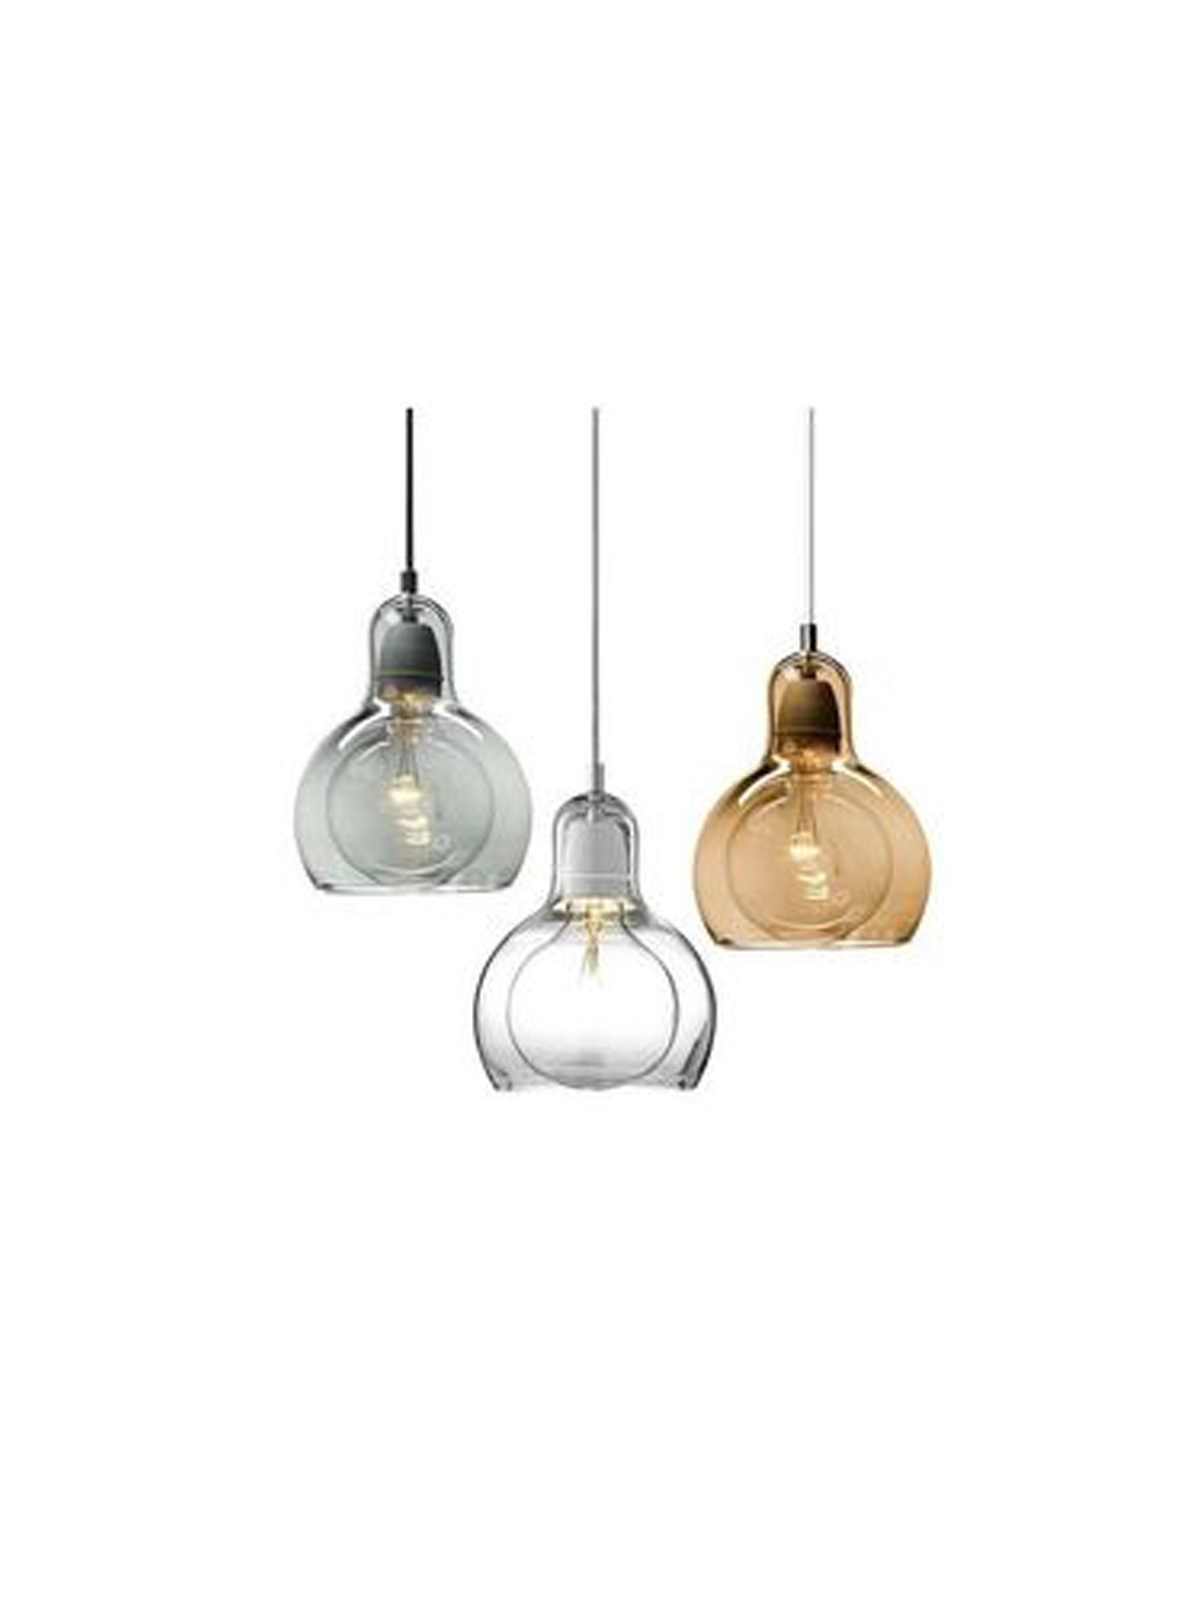 Mega Bulb &tradition Sofie Refer DesignOrt Lampen Berlin